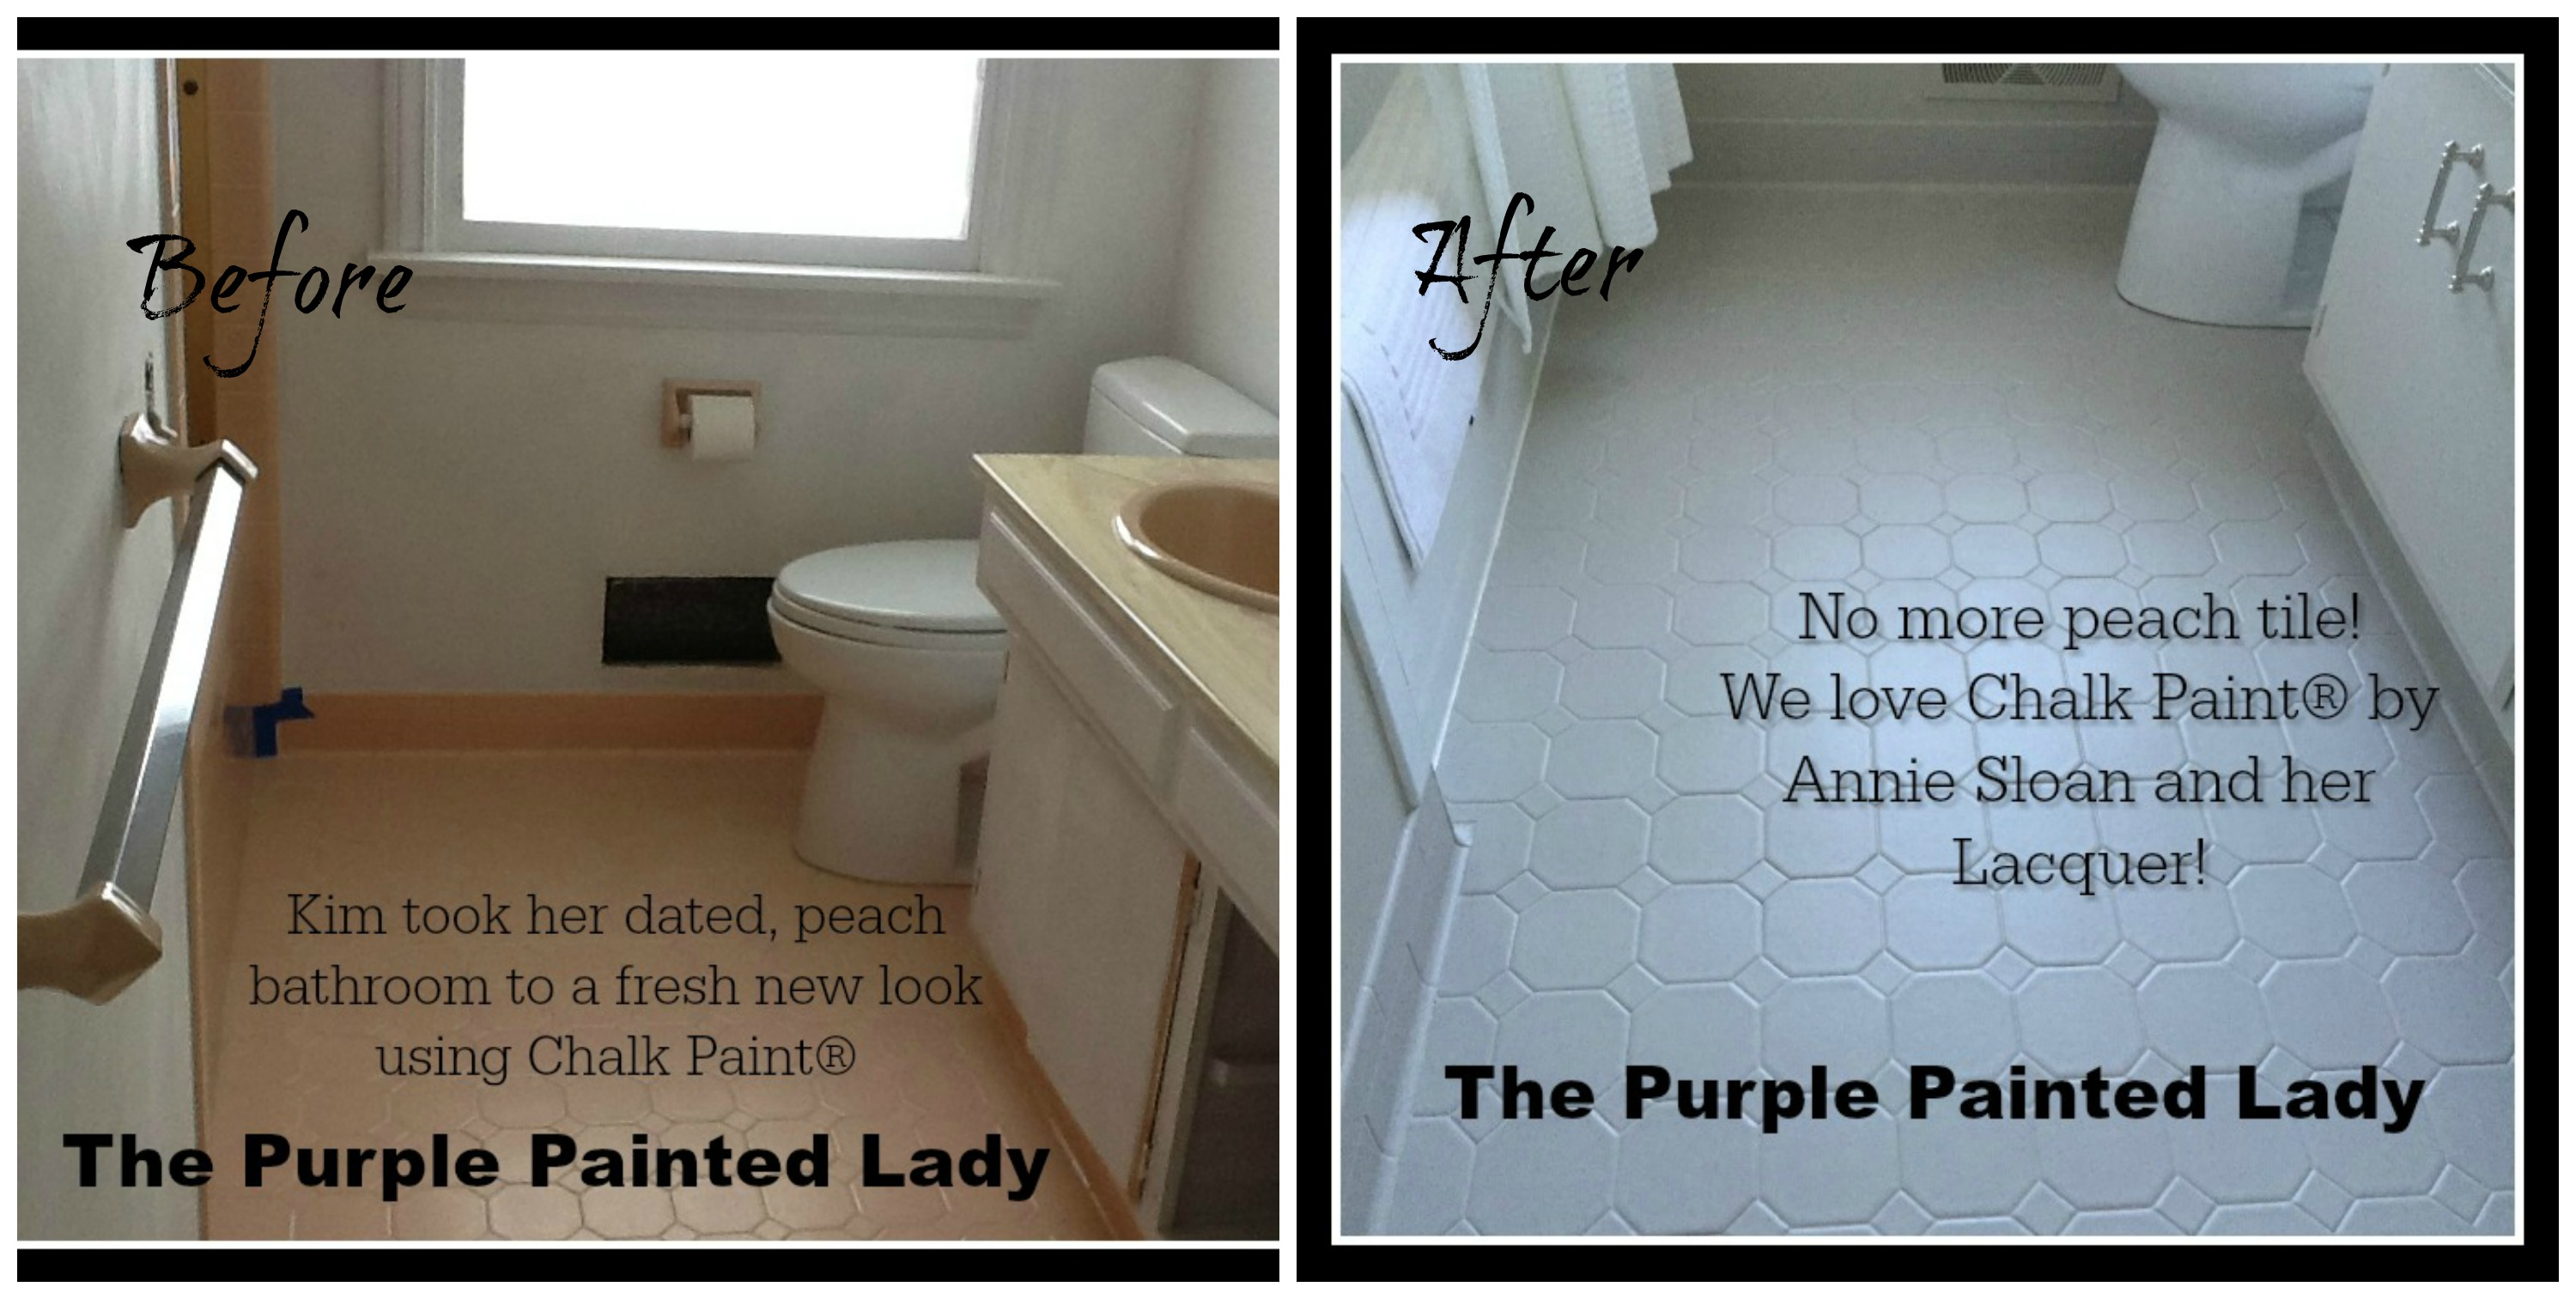 Painting Tile In The Bathroom With Chalk Paint The Purple - Waterproof paint for bathroom tiles for bathroom decor ideas